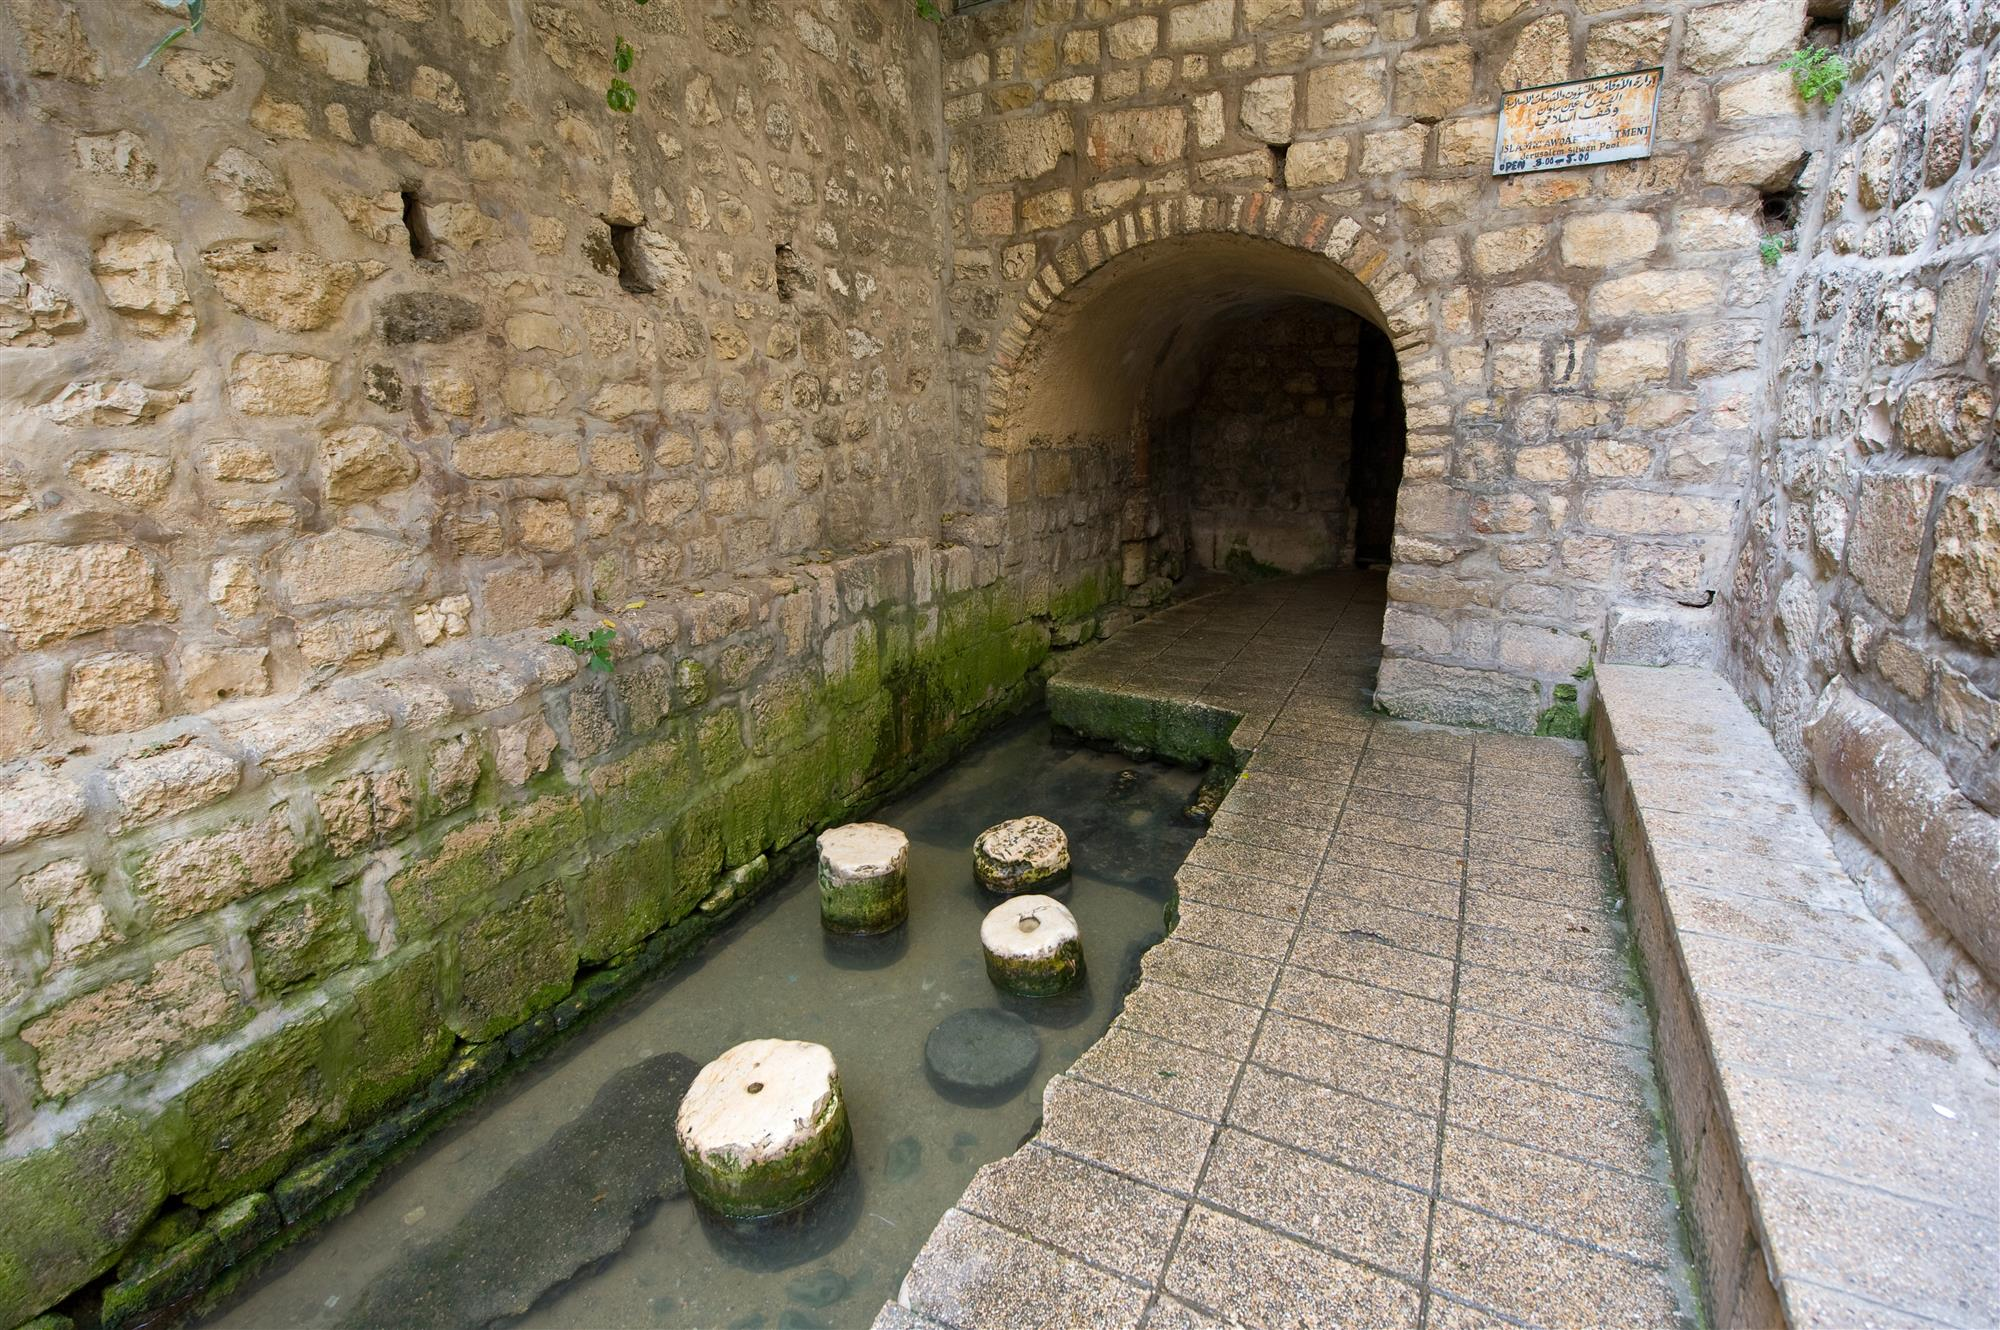 The pool of Siloam at the end of Hezekiah's tunnel is a rock-cut pool on the southern slope of 'the City David' in JerusaleM. Piscina de Siloé, Ciudad de David